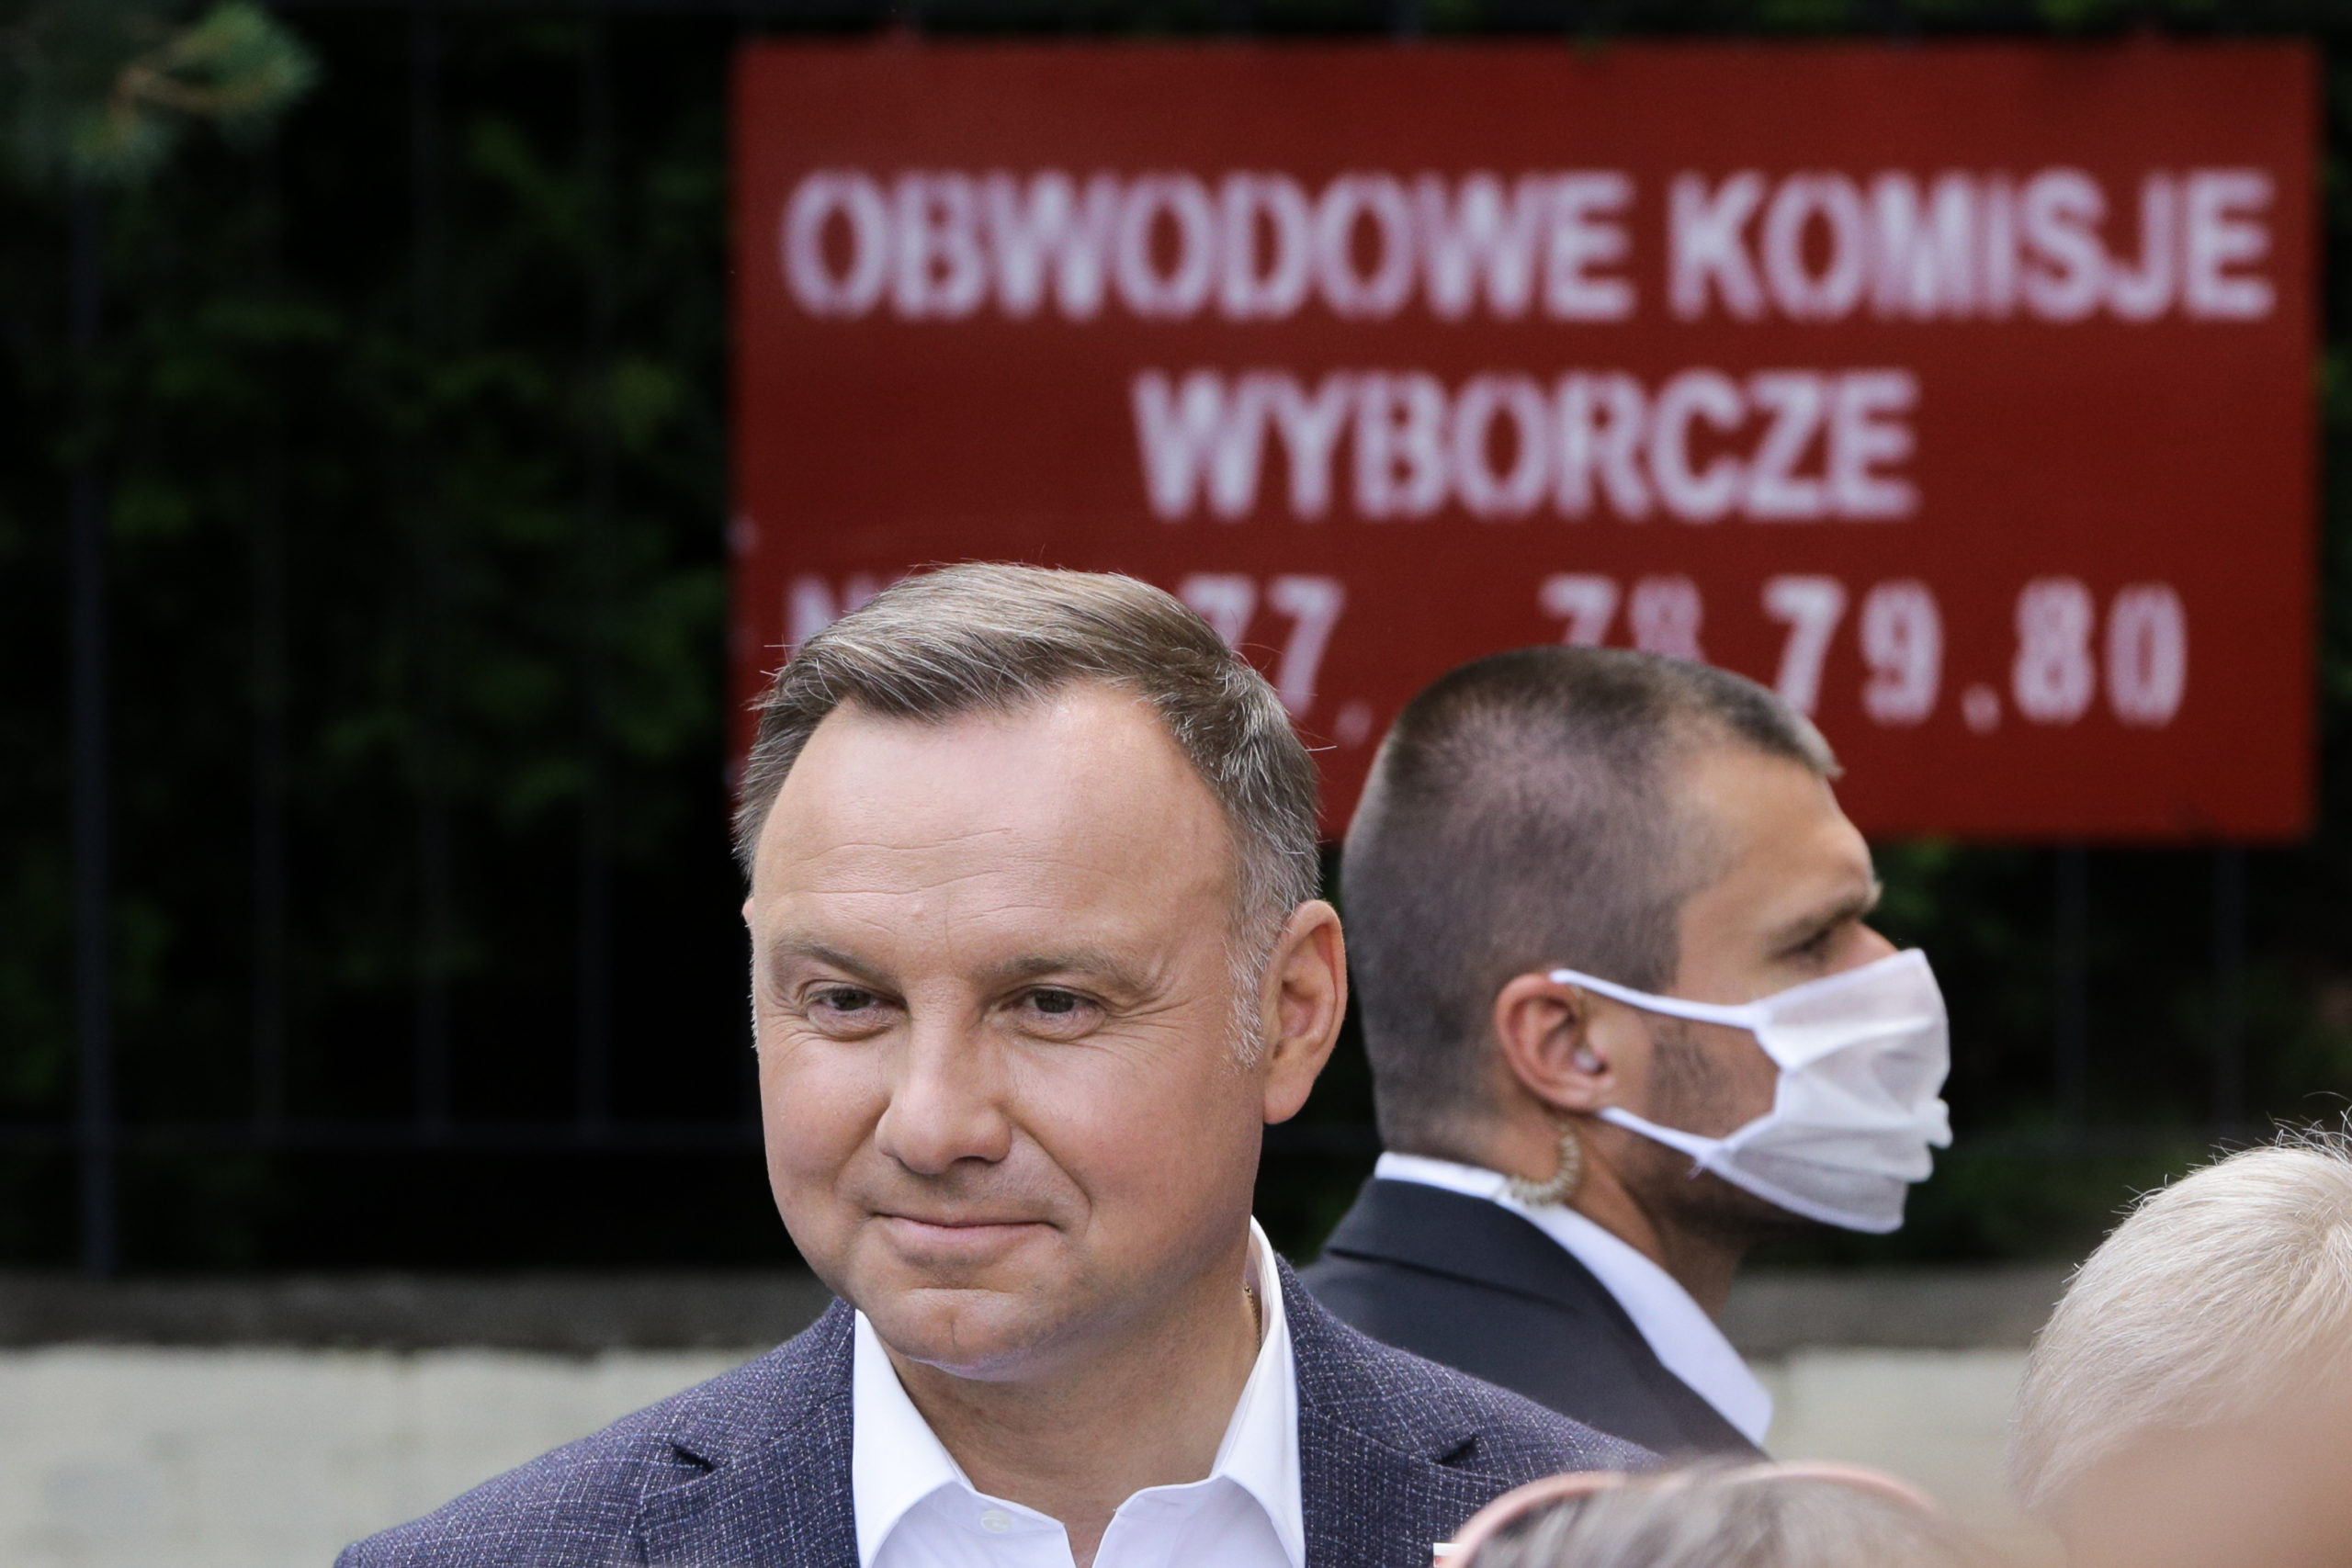 President of Poland, Andrzej Duda seen after voting.